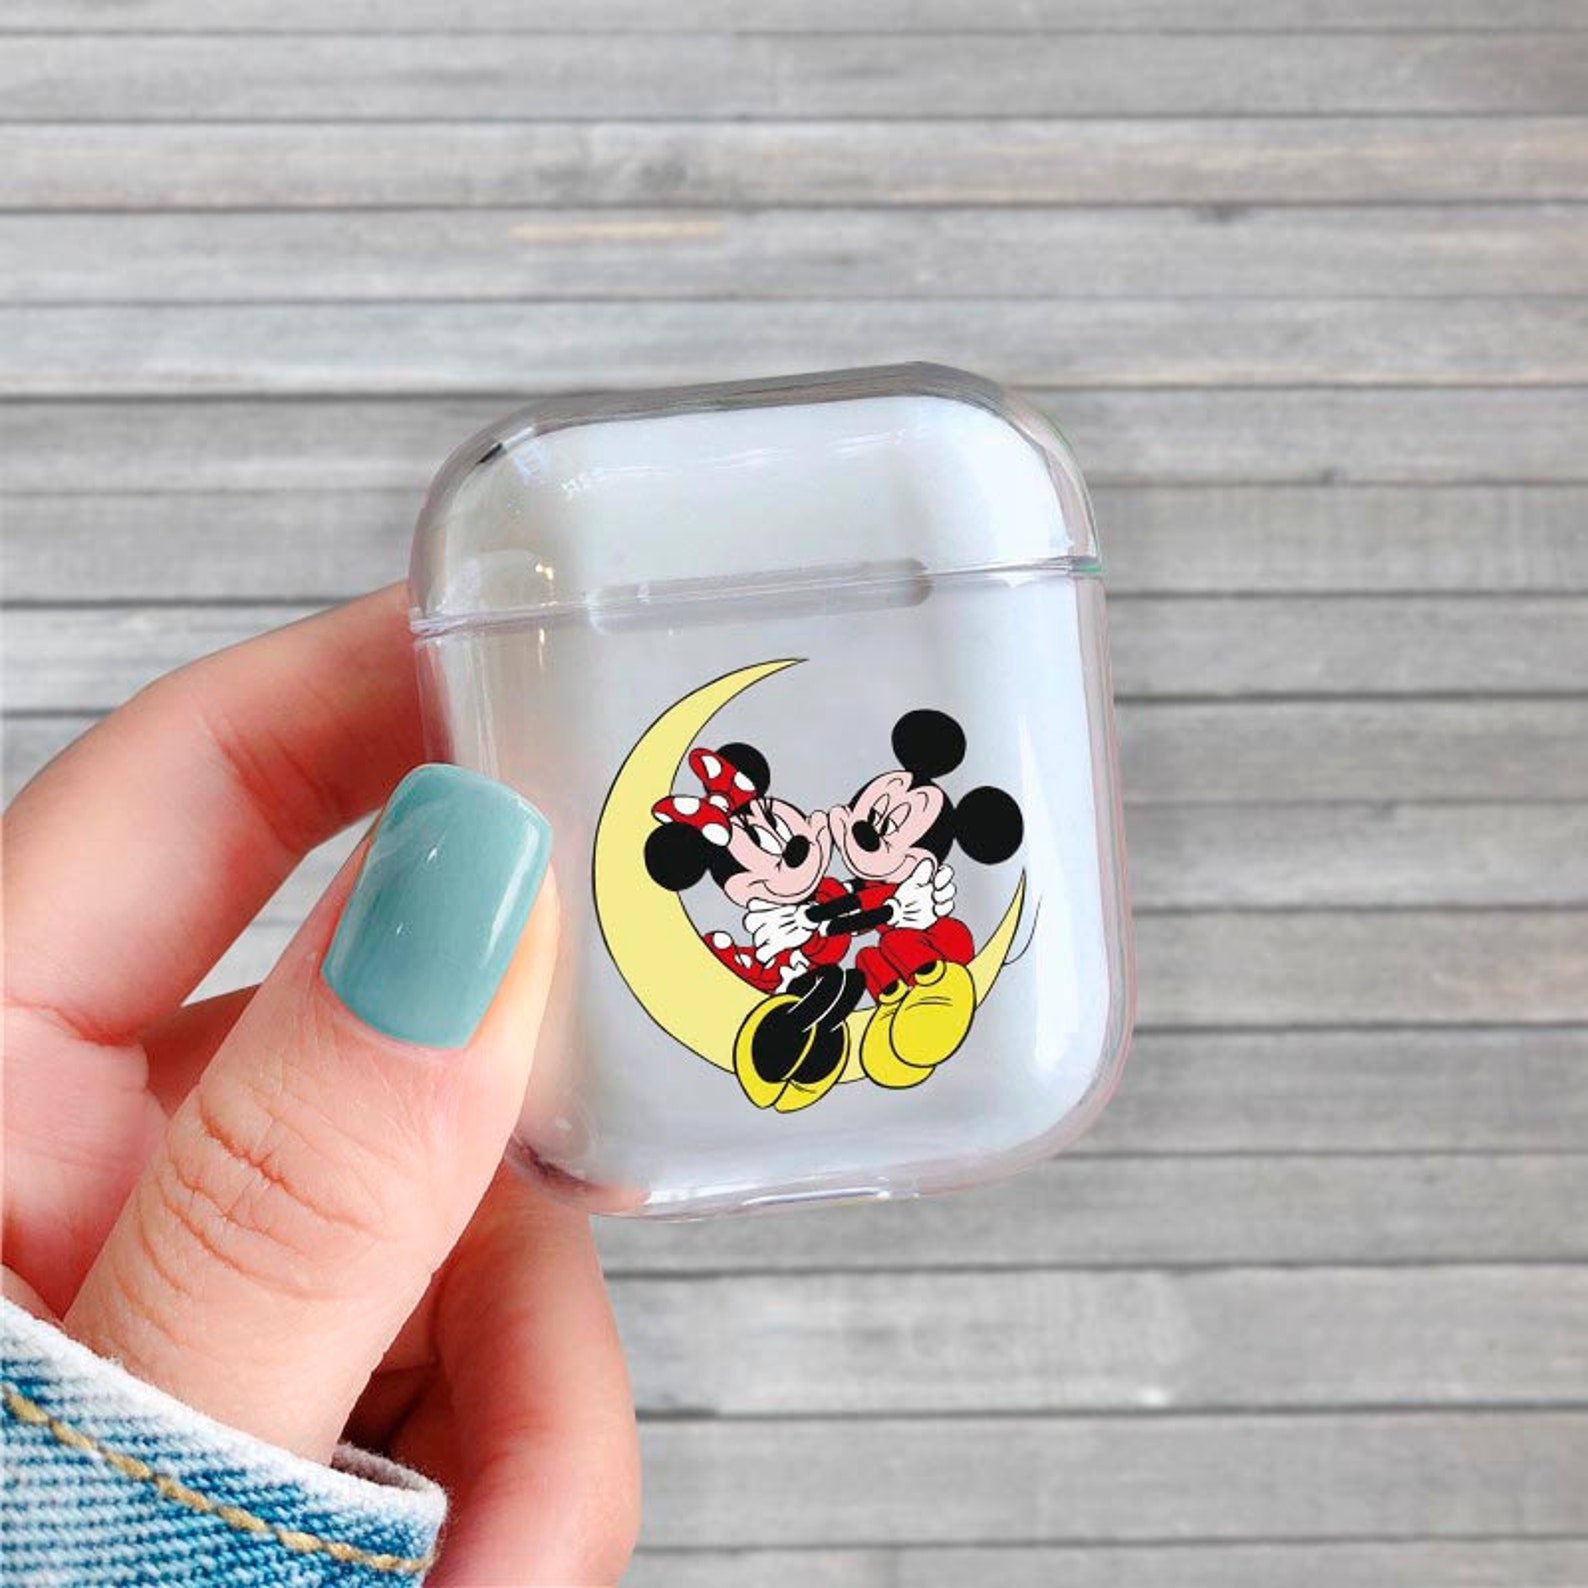 Romantic Disney Couples AirPods Cases